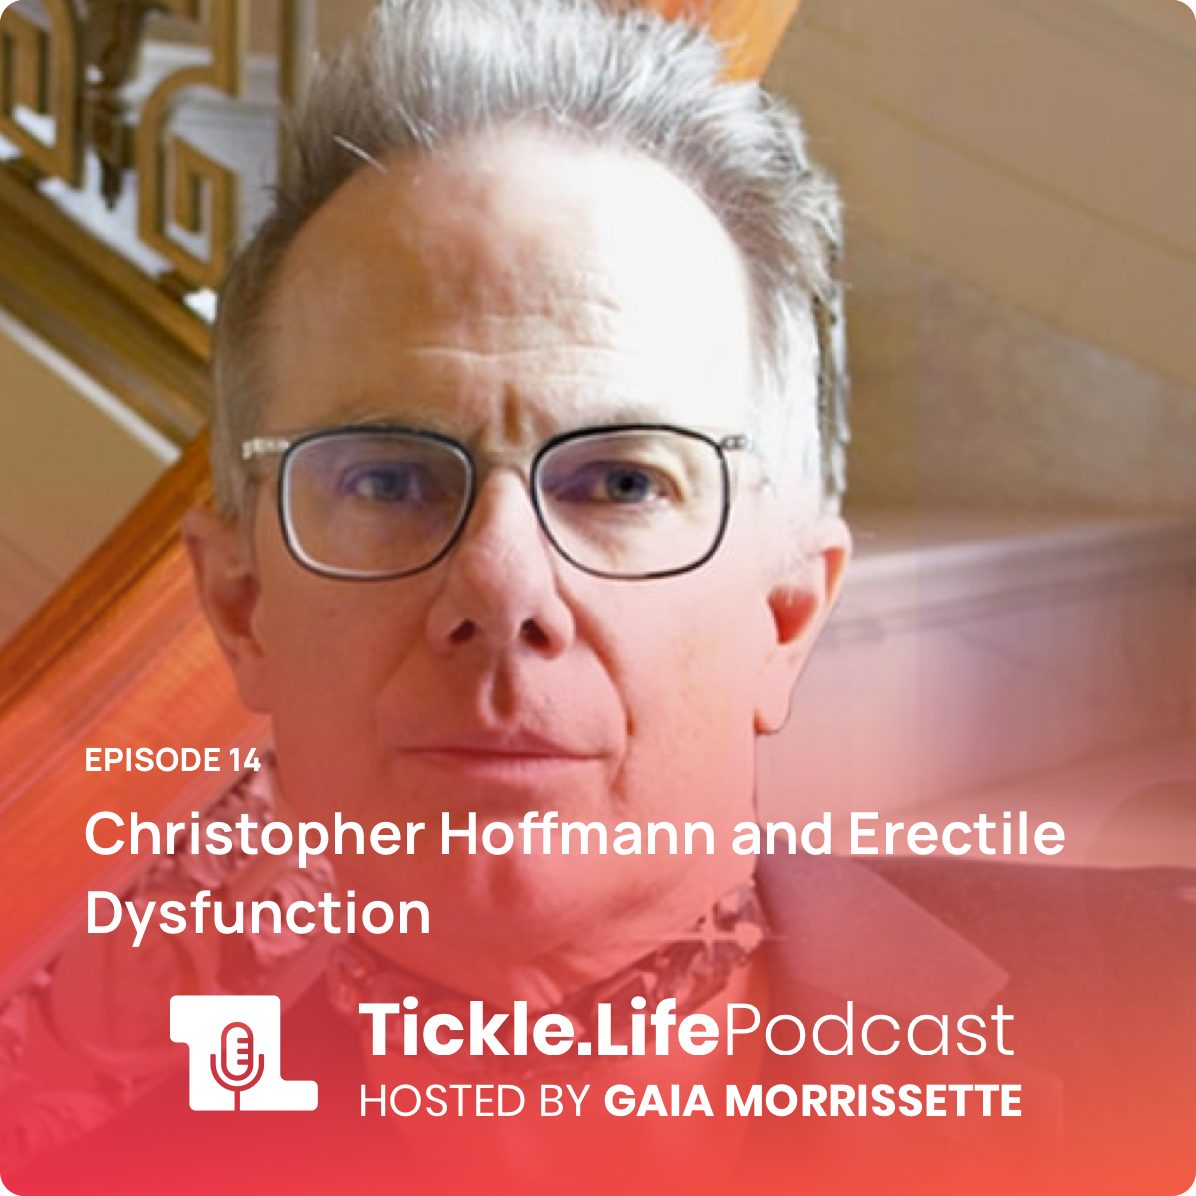 Tickle.Life Podcast - Christopher Hoffmann and Erectile Dysfunction